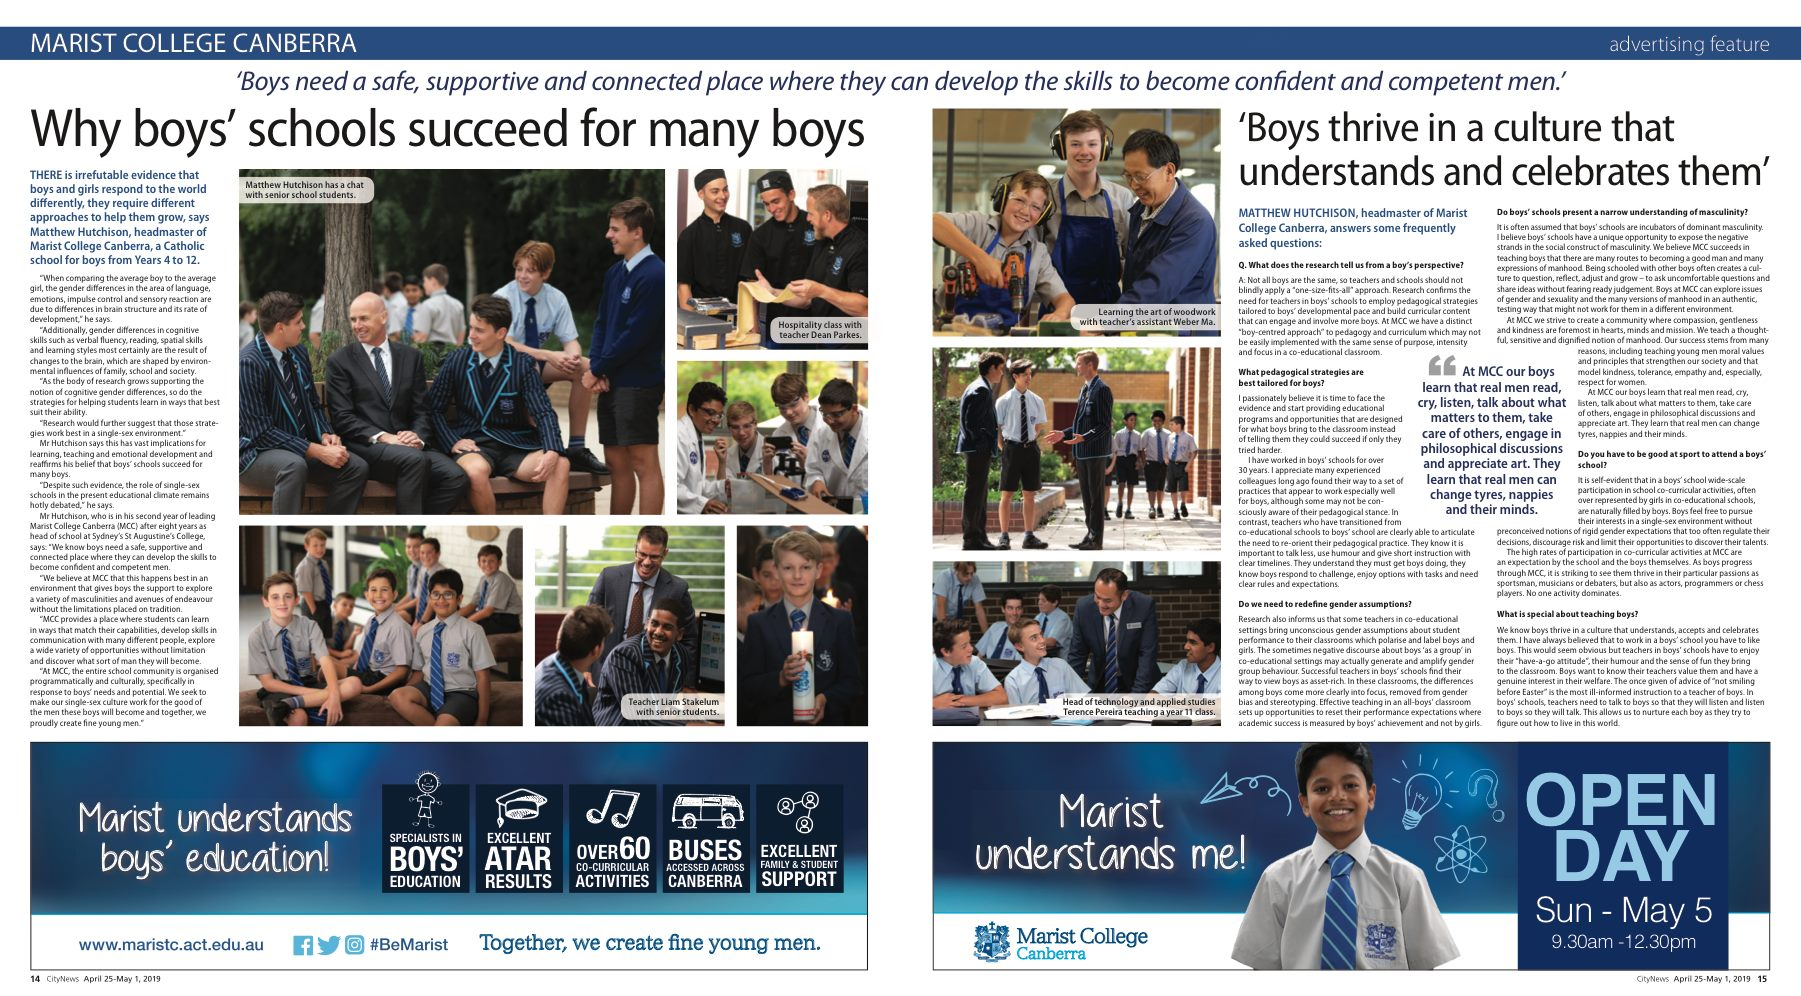 Double-Page Spread About Boys' Education For Marist College Canberra